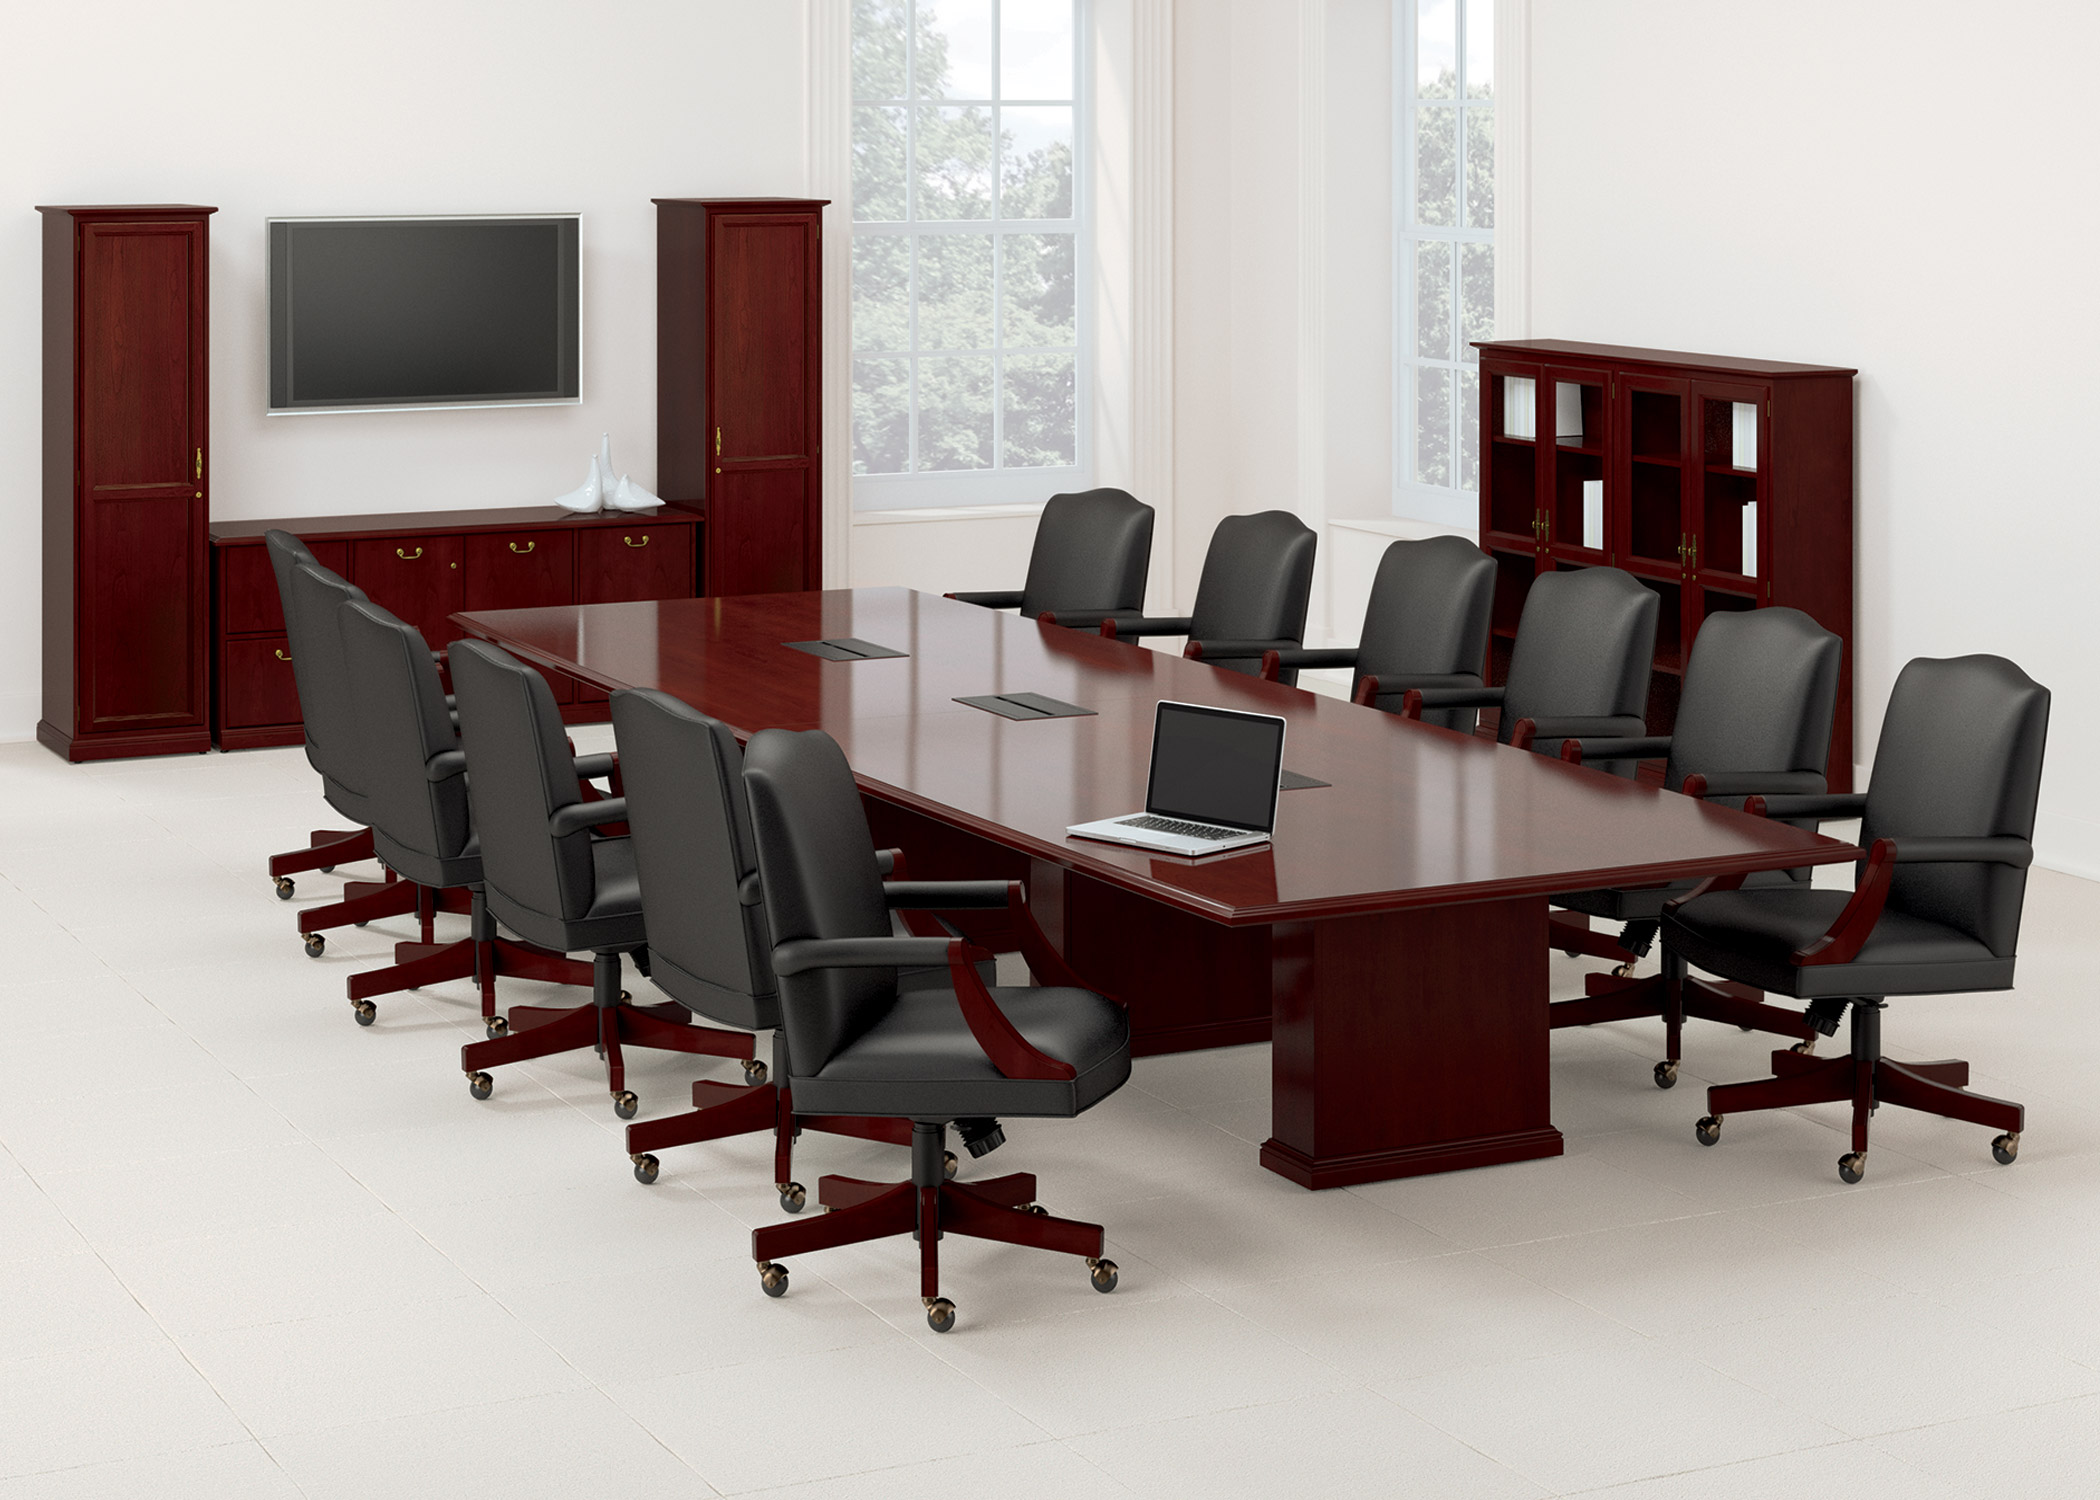 Meeting Room Tables Conference Room Tables 10 Styles To Choose From Ubiq